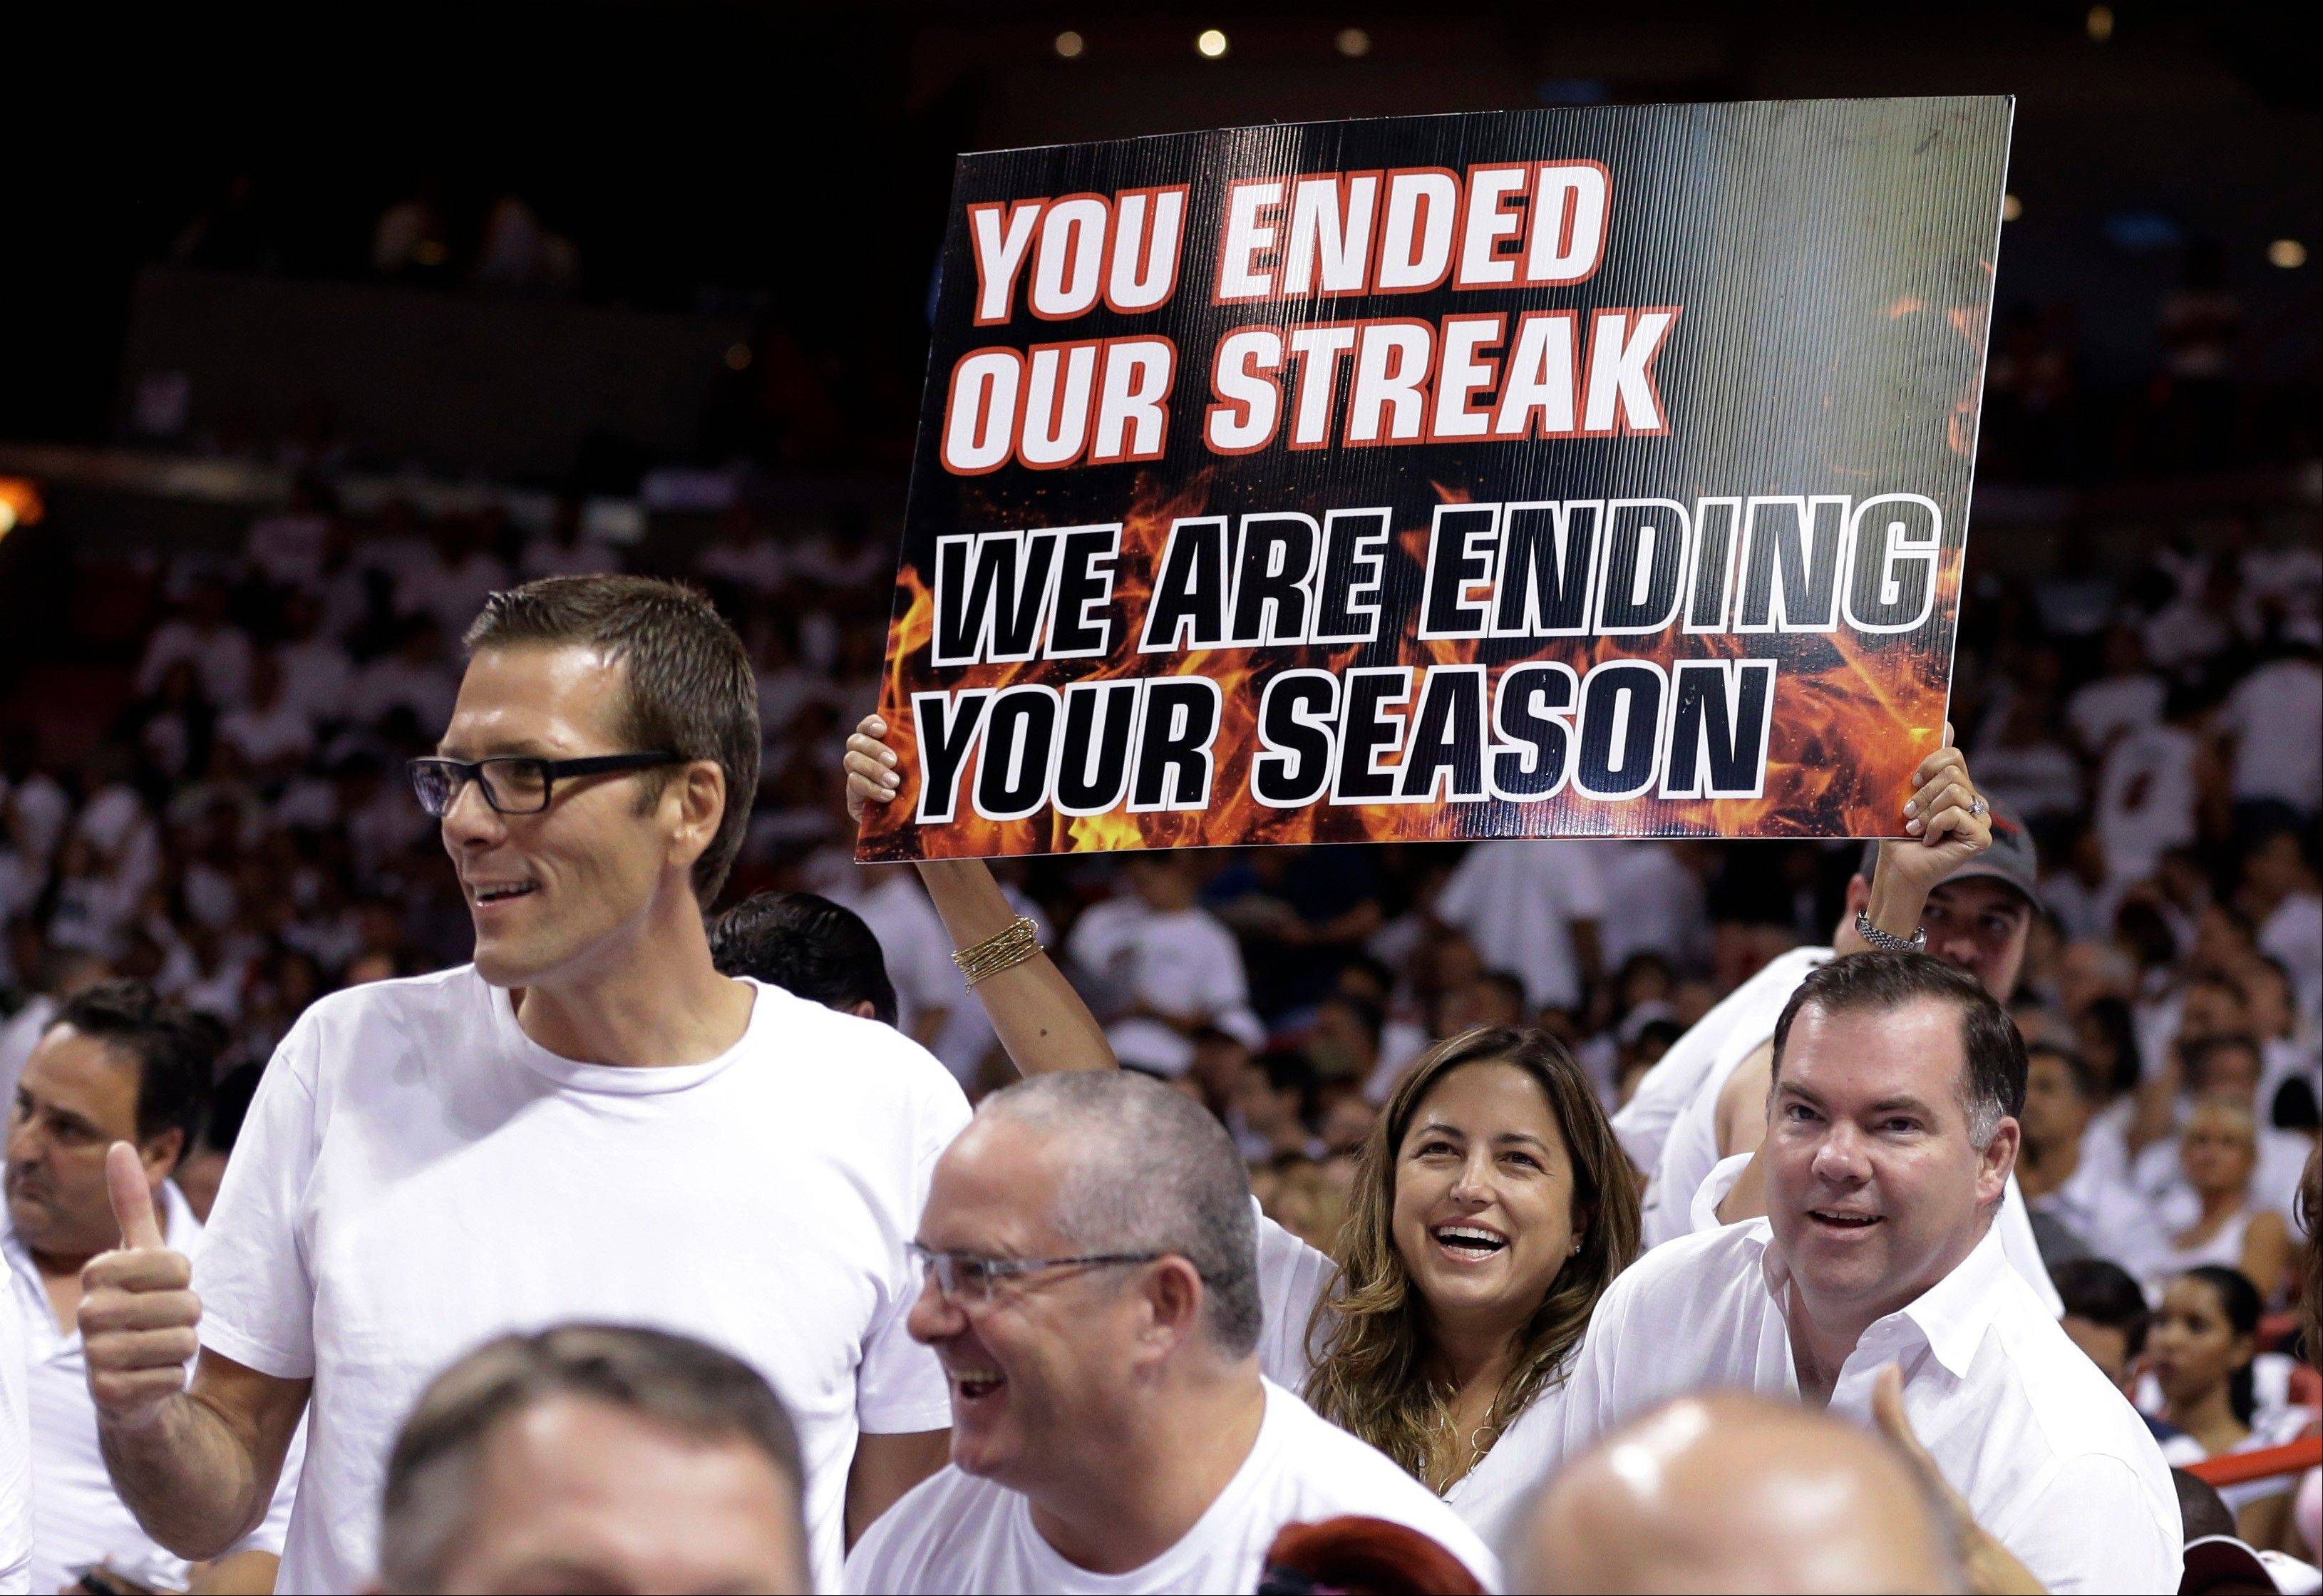 A Miami Heat fan holds up a sign during the first half of Game 5 of an NBA basketball Eastern Conference semifinal between the Heat and the Chicago Bulls, Wednesday, May 15, 2013 in Miami. The Heat defeated the Bulls 94-91, and advance to the conference finals.